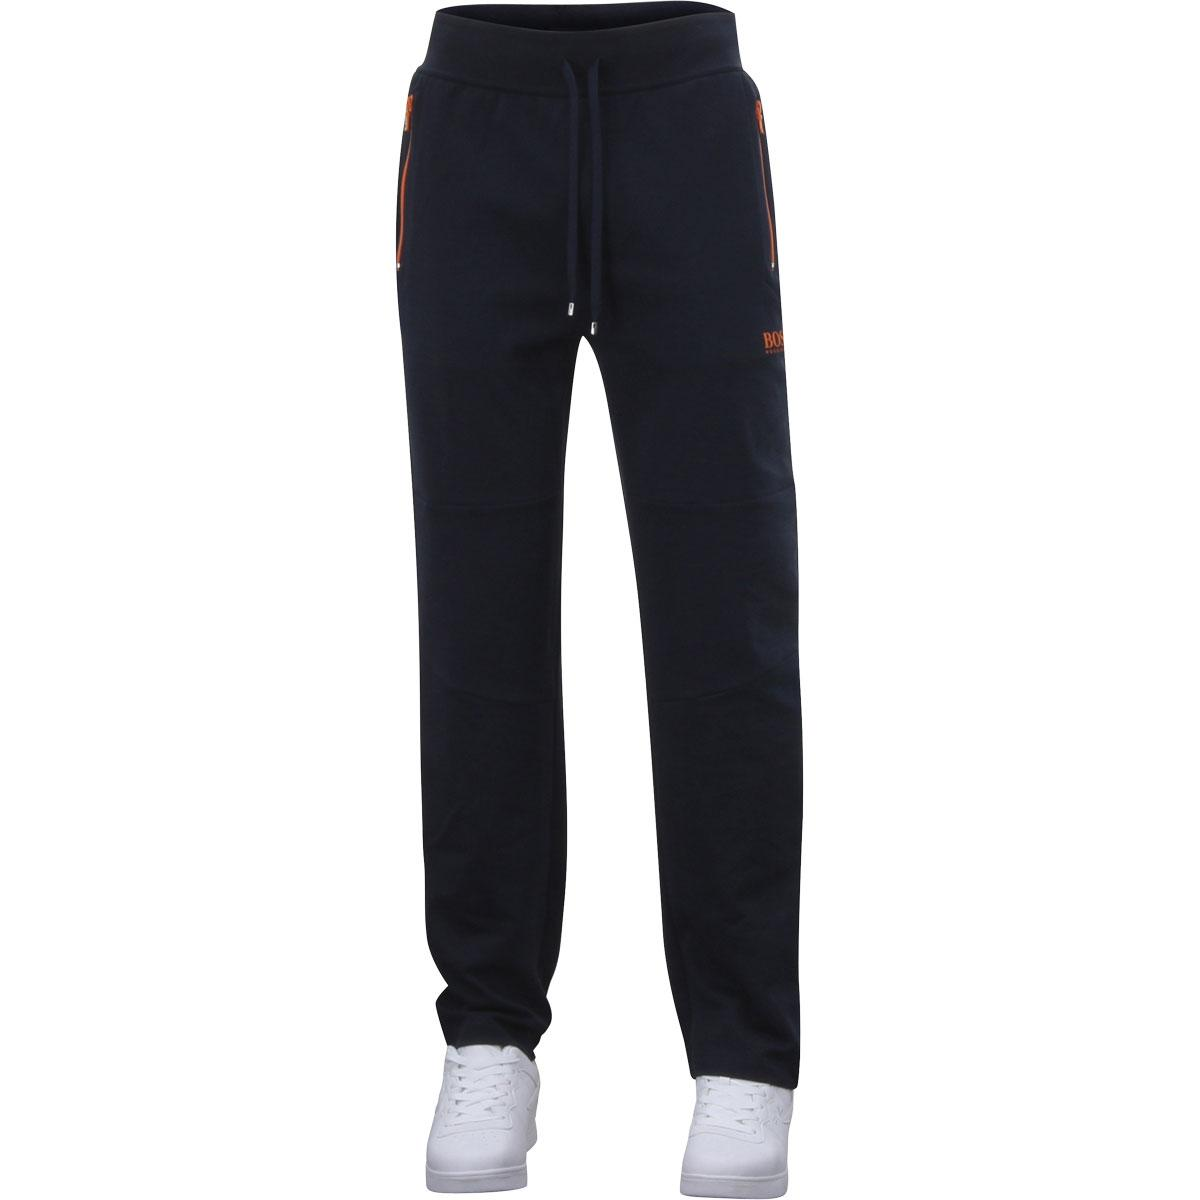 Hugo Boss Men's Long Pant Drawstring Tracksuit Sweat Pants